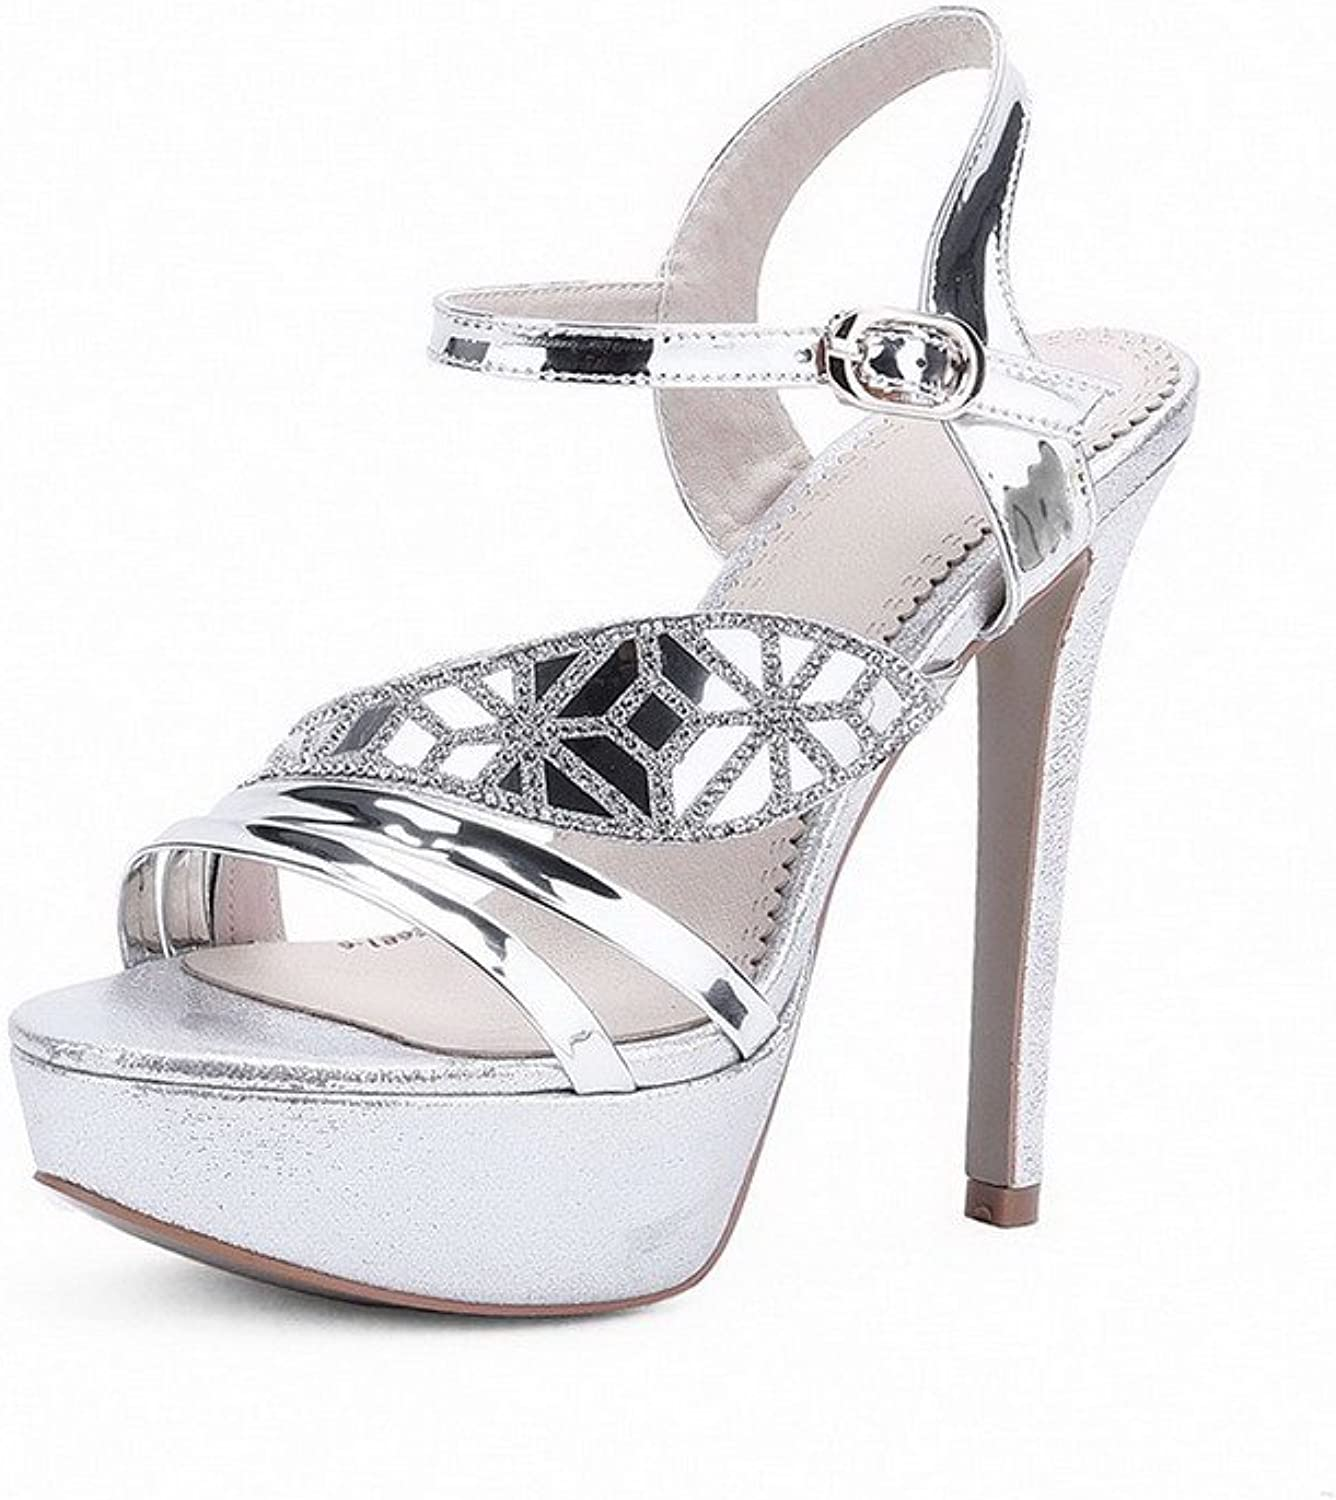 AmoonyFashion Women's Spikes-Stilettos Patent Leather Solid Buckle Open Toe Sandals